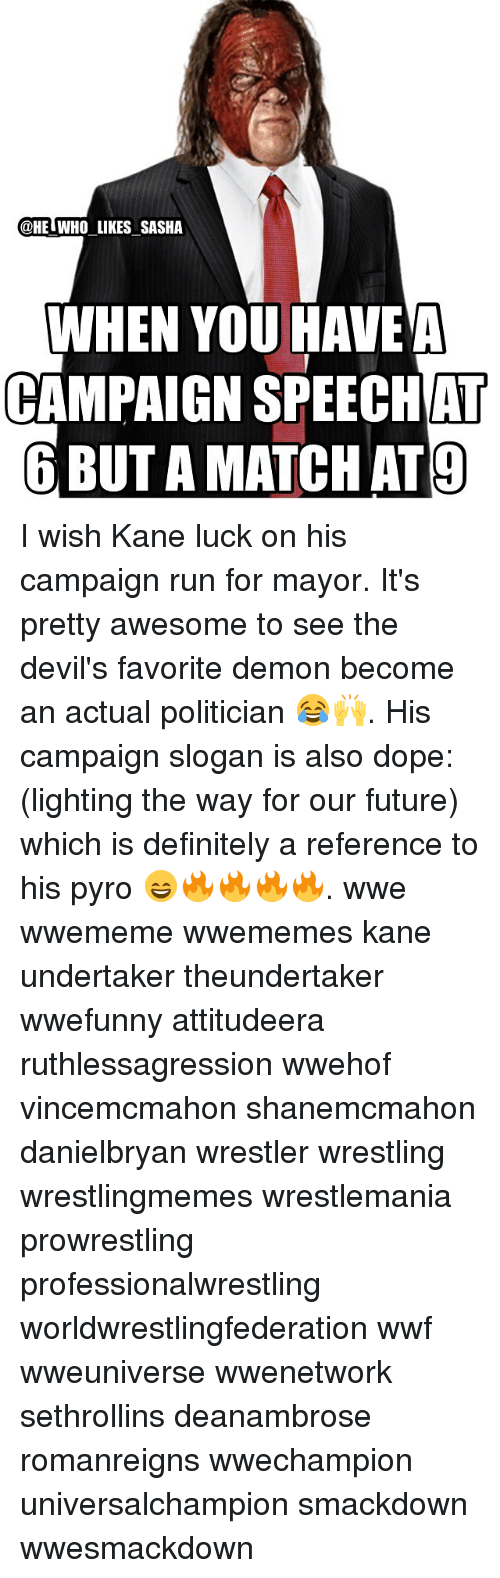 Definitely, Dope, and Future: @HE WHO LIKES SASHA  WHEN YOU HAVE A  CAMPAIGN AT  6 BUTAMATCHAT9 I wish Kane luck on his campaign run for mayor. It's pretty awesome to see the devil's favorite demon become an actual politician 😂🙌. His campaign slogan is also dope: (lighting the way for our future) which is definitely a reference to his pyro 😄🔥🔥🔥🔥. wwe wwememe wwememes kane undertaker theundertaker wwefunny attitudeera ruthlessagression wwehof vincemcmahon shanemcmahon danielbryan wrestler wrestling wrestlingmemes wrestlemania prowrestling professionalwrestling worldwrestlingfederation wwf wweuniverse wwenetwork sethrollins deanambrose romanreigns wwechampion universalchampion smackdown wwesmackdown